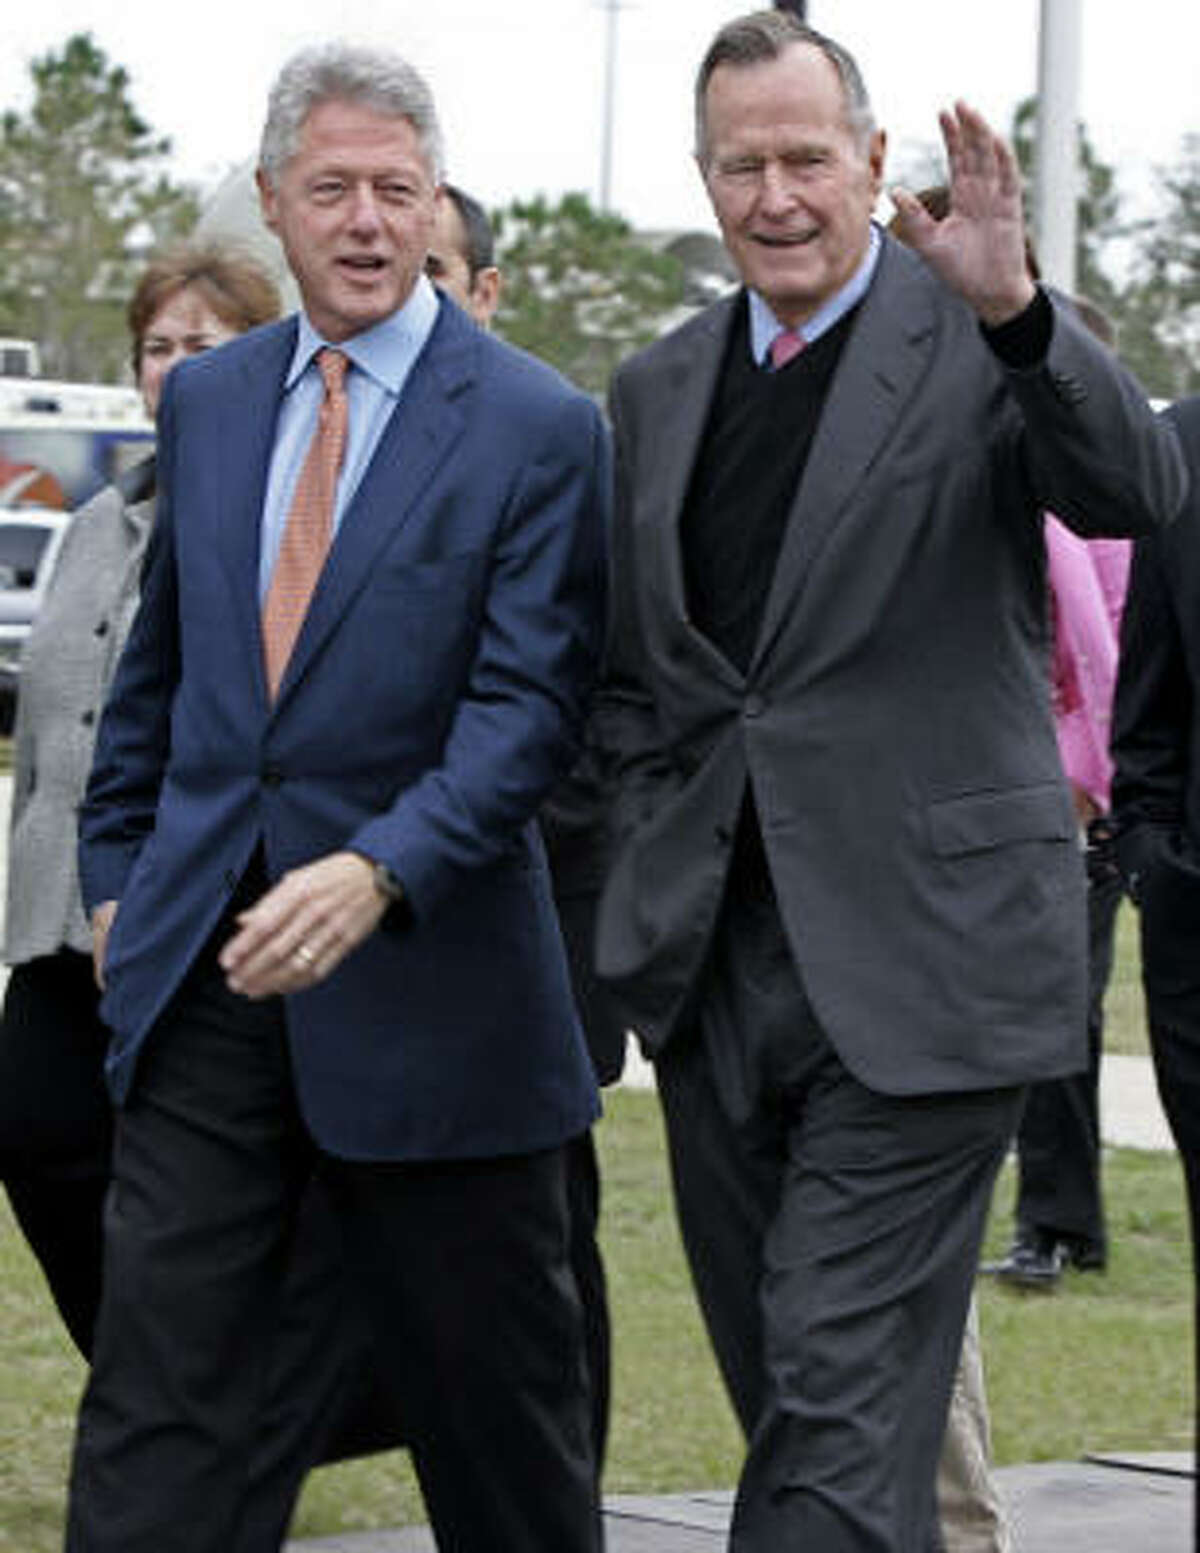 Former Presidents Clinton and Bush, shown in New Orleans for their Katrina relief effort in 2005. They're working together again to help the Gulf Coast after Ike.